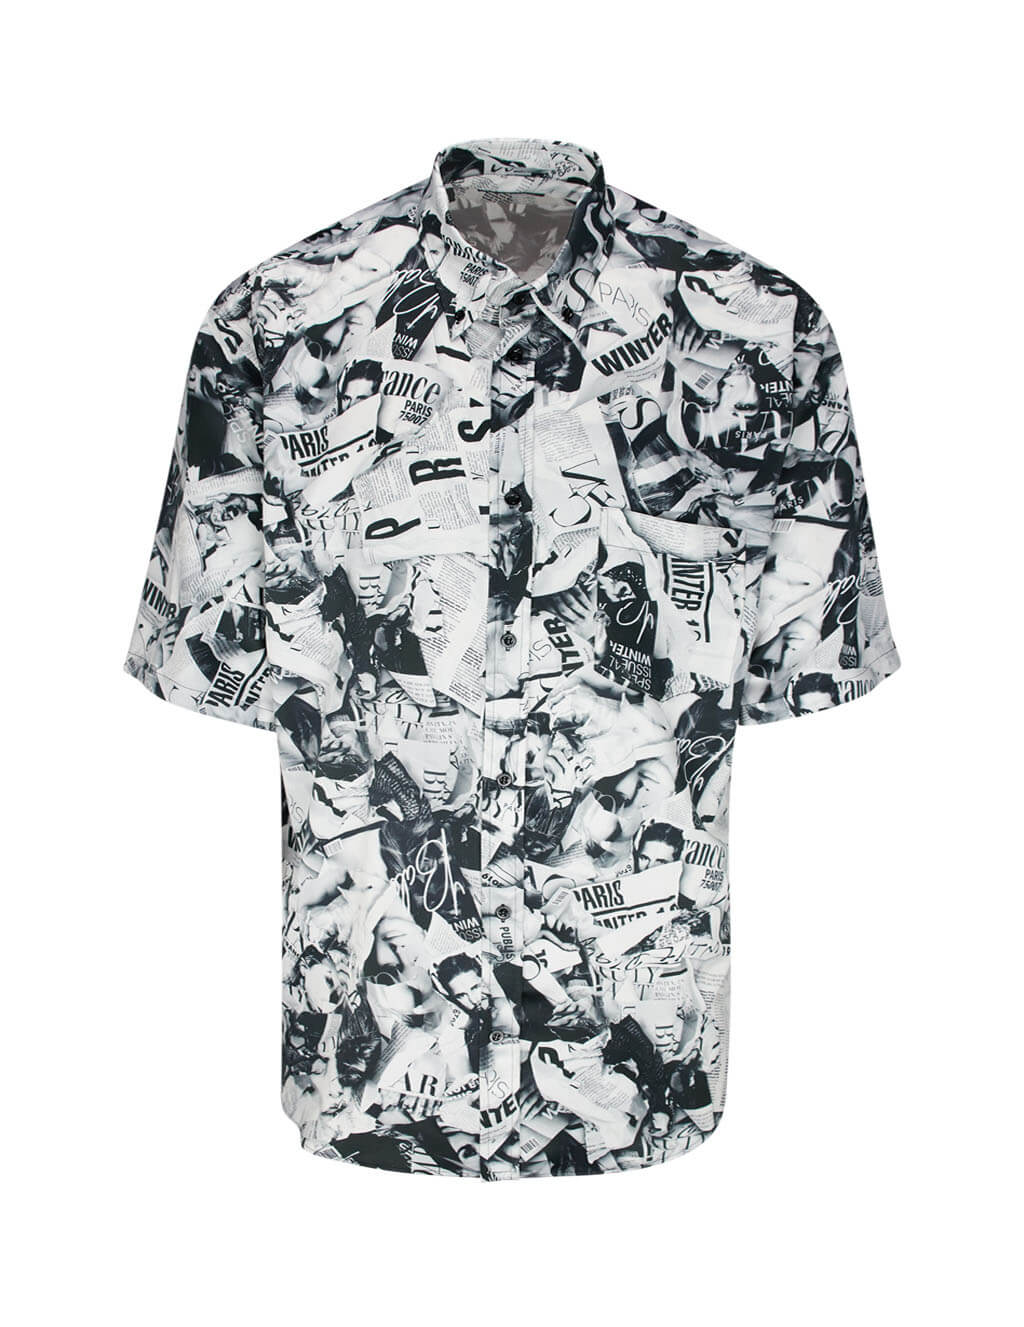 Balenciaga Men's Giulio Fashion Black/White Magazine Shirt 595250TGL231070